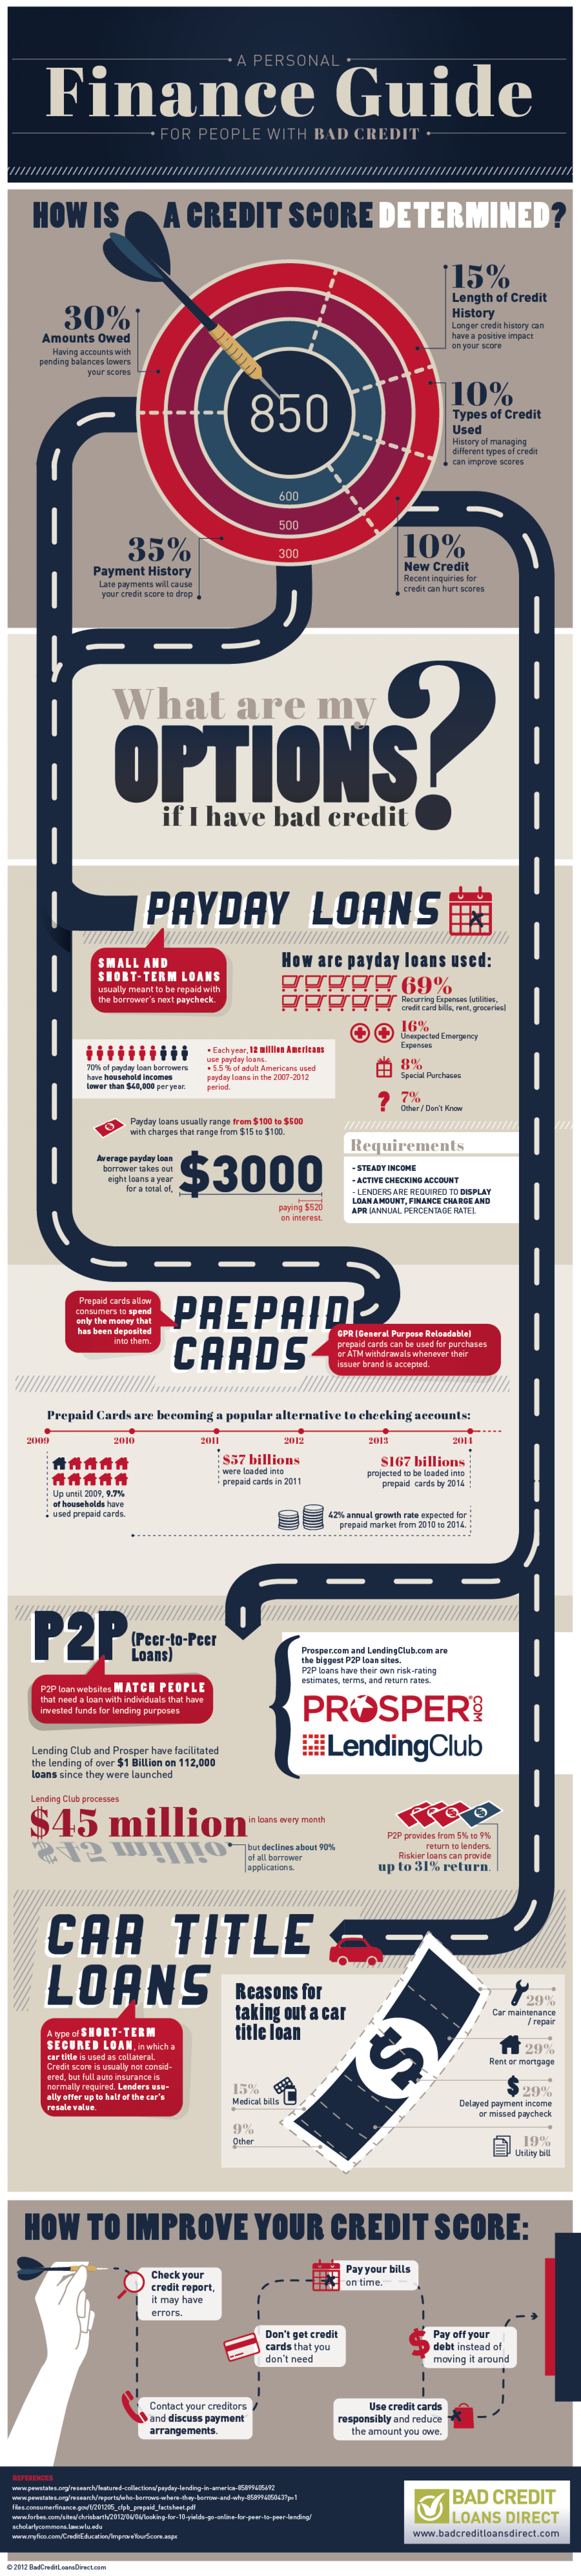 A PERSONAL FINANCE GUIDE FOR PEOPLE WITH BAD CREDIT Infographic